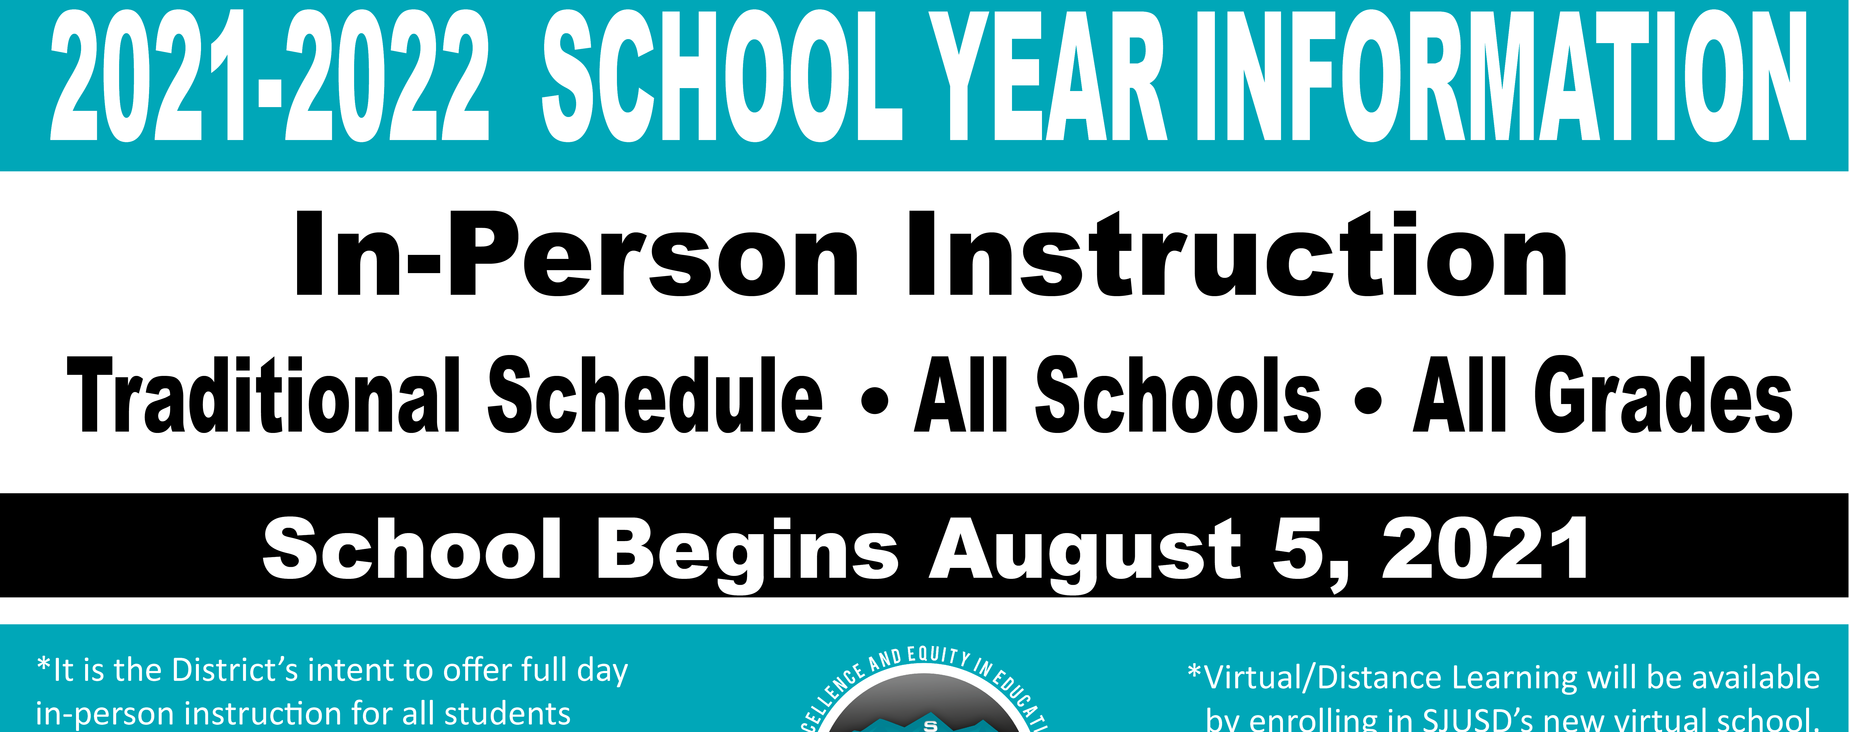 2021-2022 School Year Info - In-person Instruction all schools all grades, first day August 5